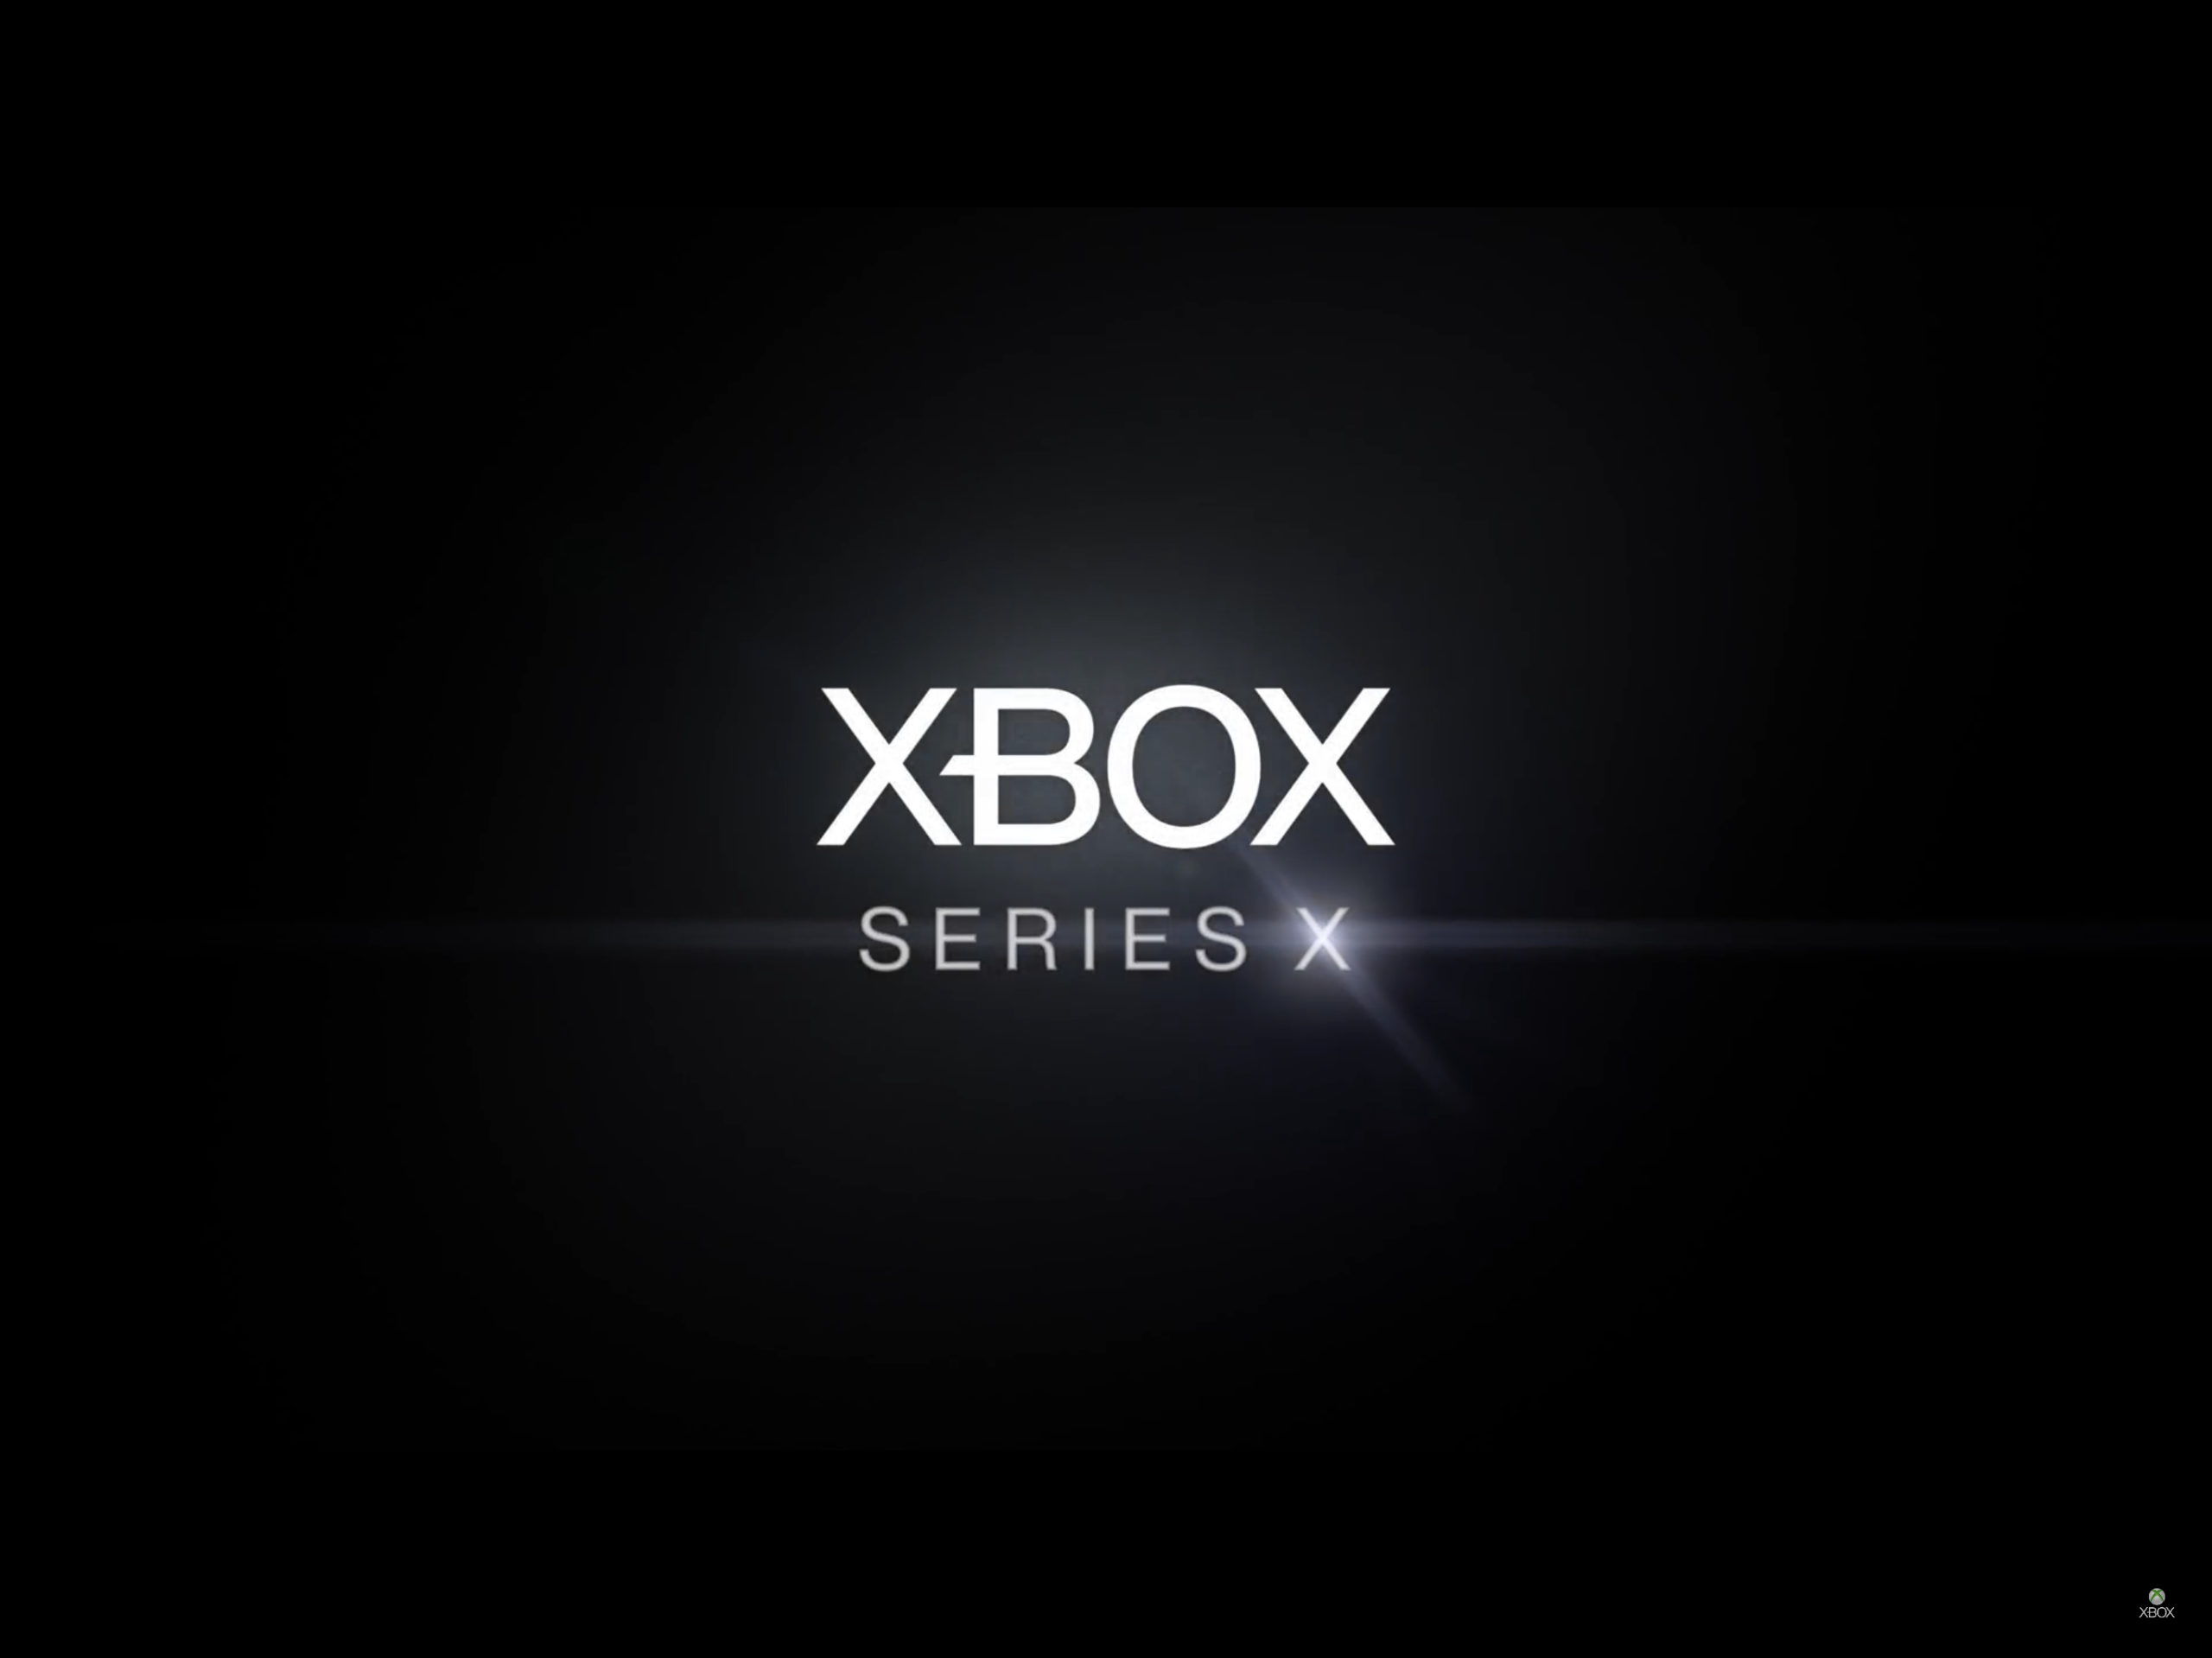 This is Xbox Series X